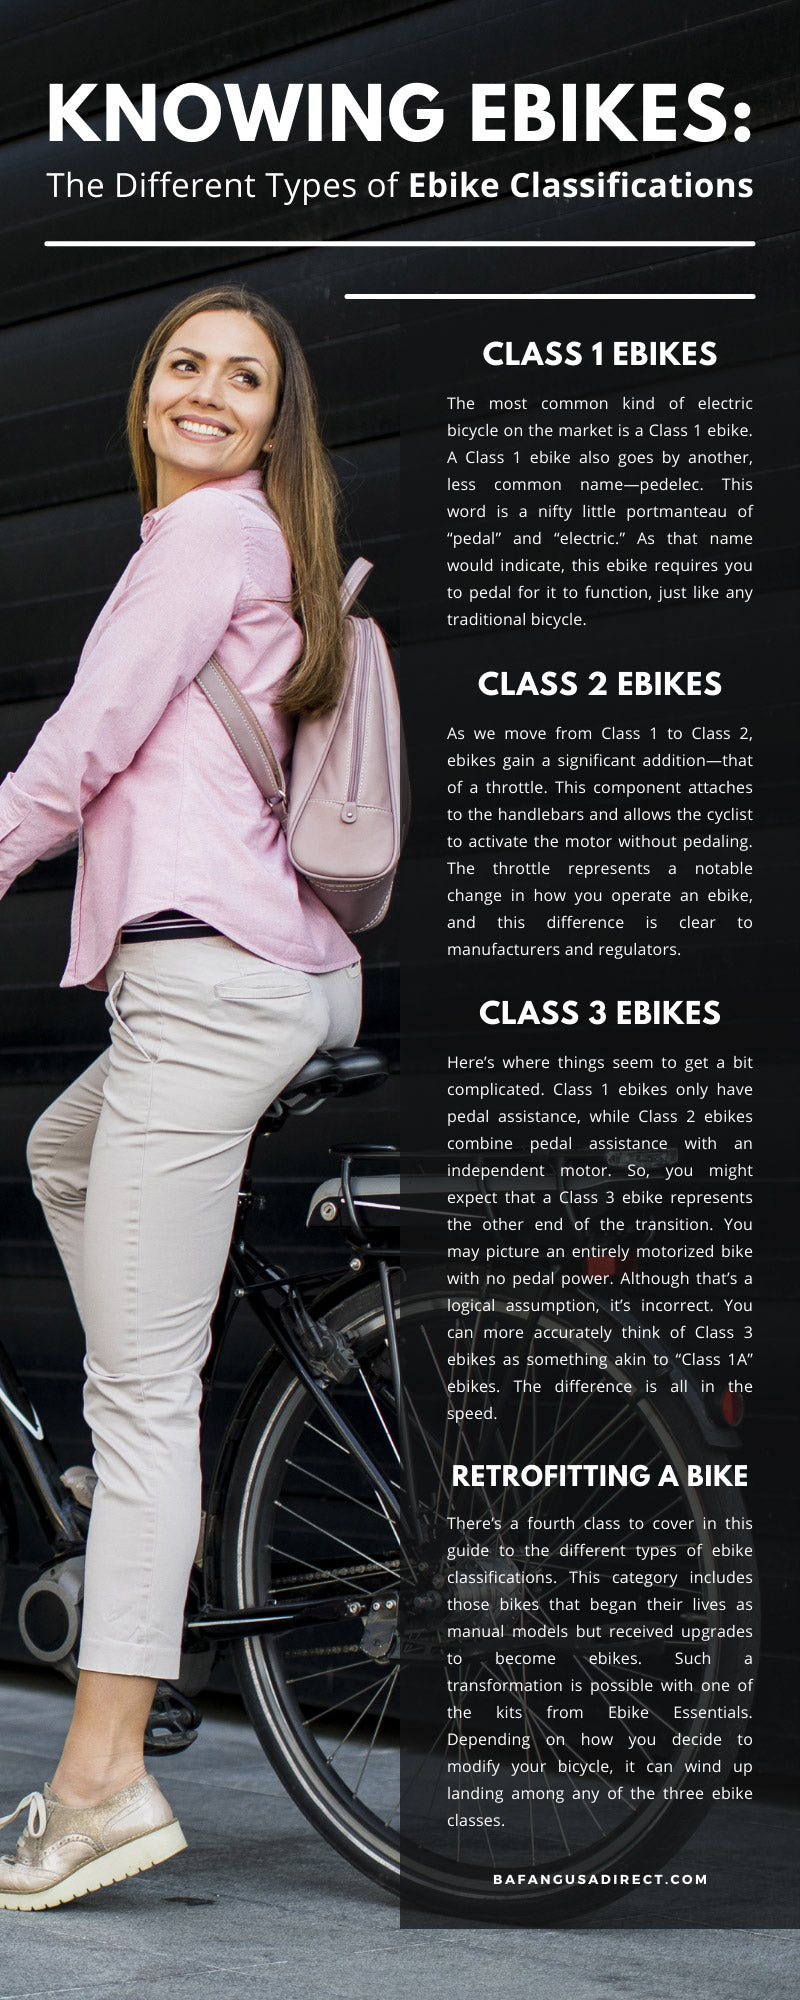 Knowing Ebikes: The Different Types of Ebike Classifications